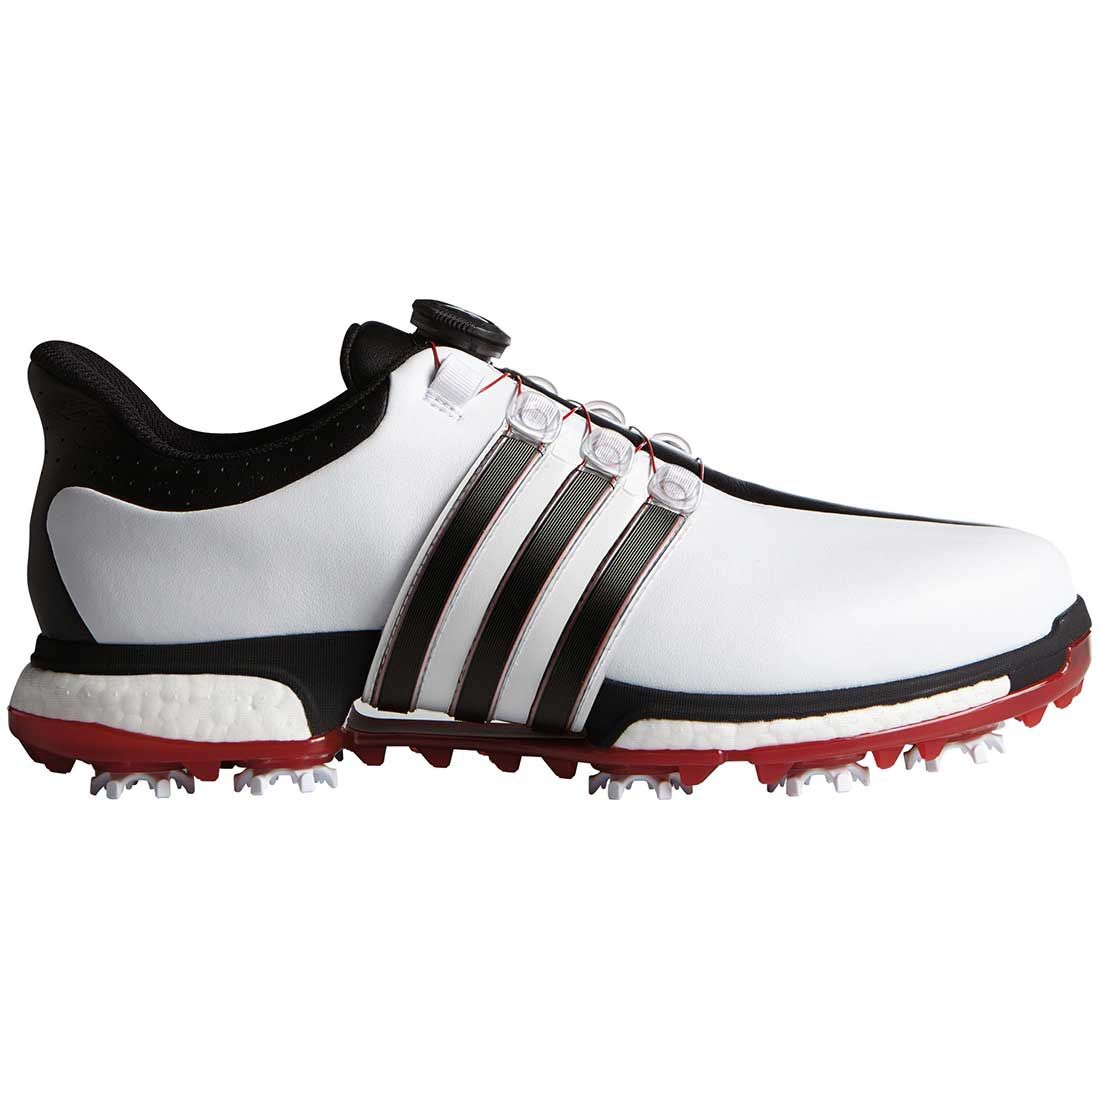 Buy Adidas Tour360 Boost Boa Golf Shoes White Black Red Golf Discount